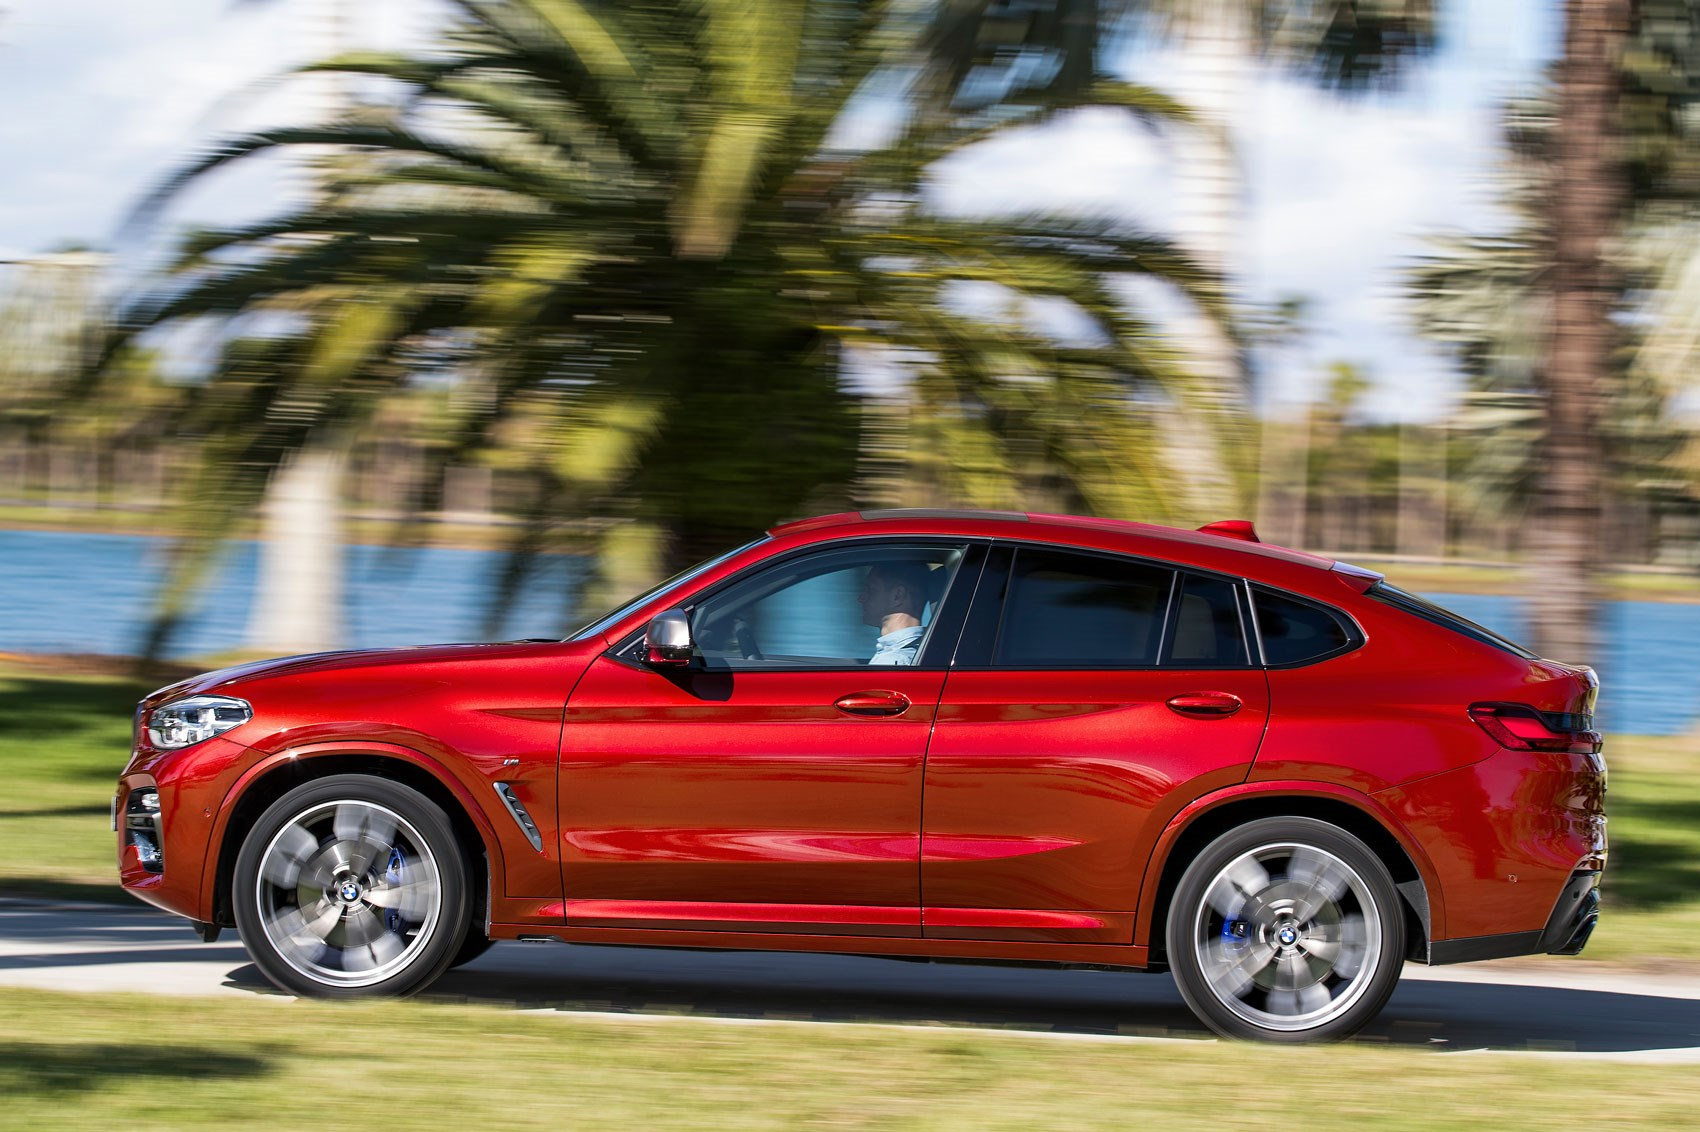 Generation X Hot Bmw X4 M40i Coming To New York Show By